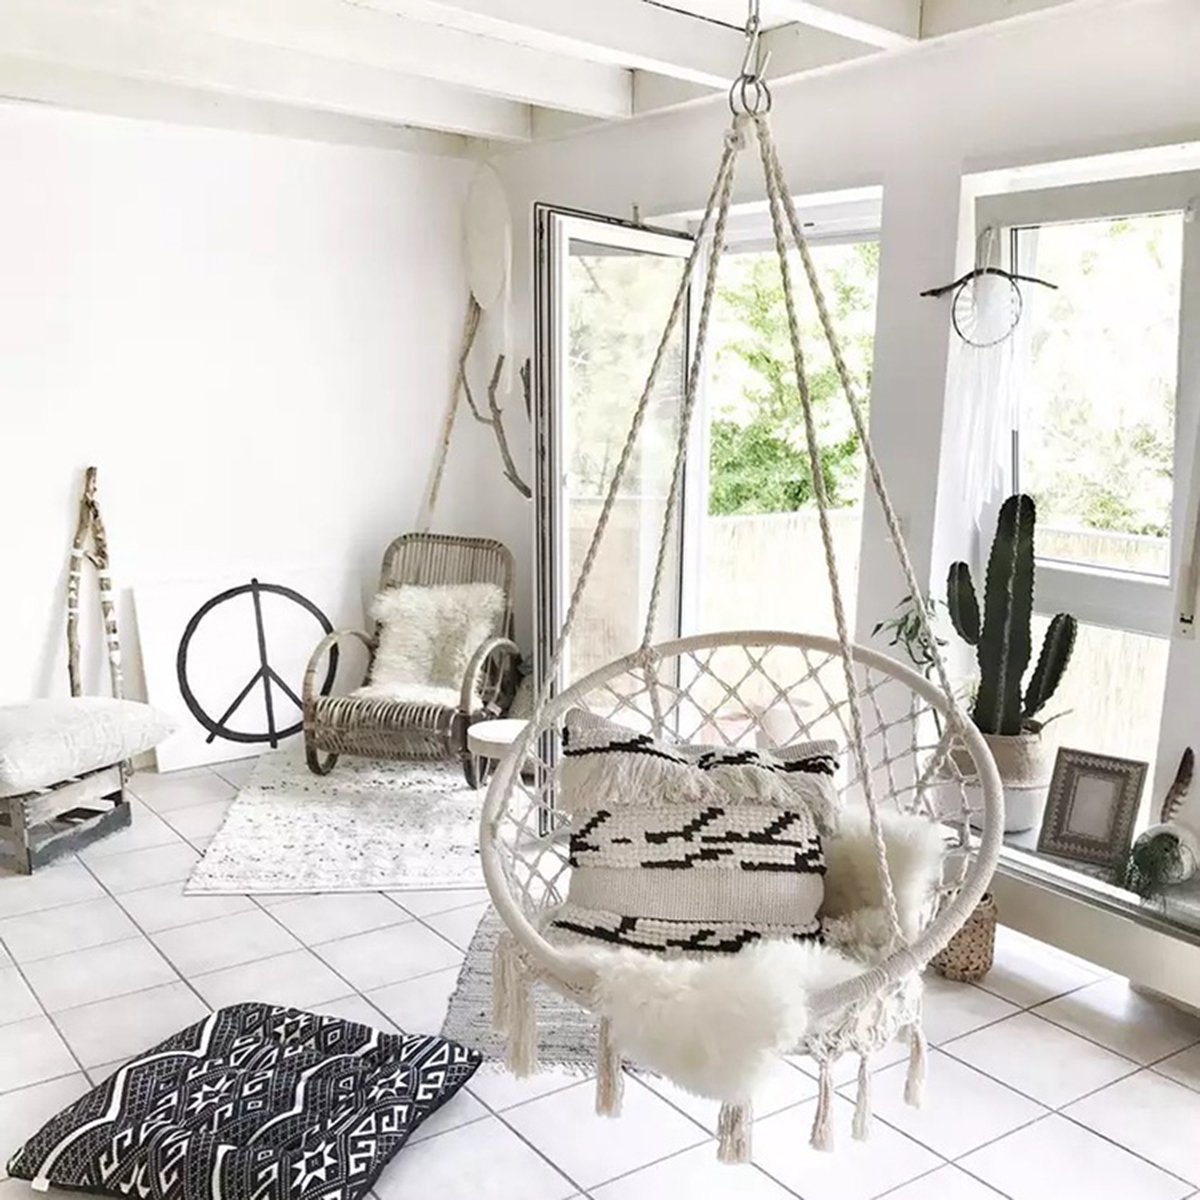 Astounding Hammock Chair Macrame Hammock Swing Chair Large Size Wih Top Circletassels 260 Pound Capacity Handmade Knitted For Indoor Outdoor Home Patio Deck Yard Unemploymentrelief Wooden Chair Designs For Living Room Unemploymentrelieforg